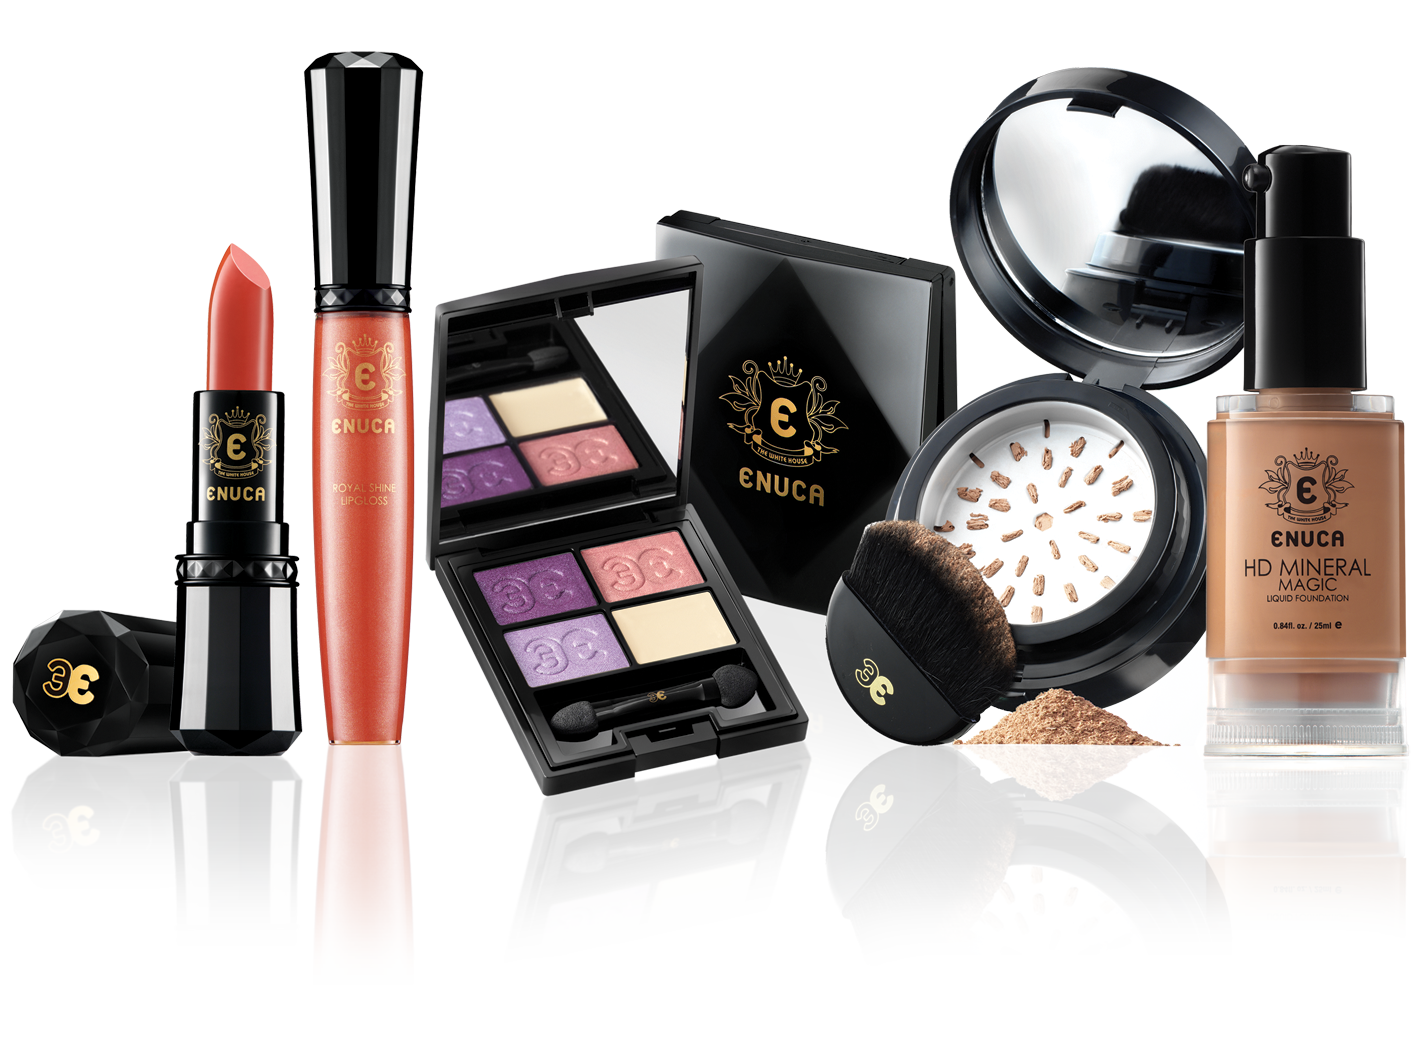 Makeup Transparent PNG image #7219